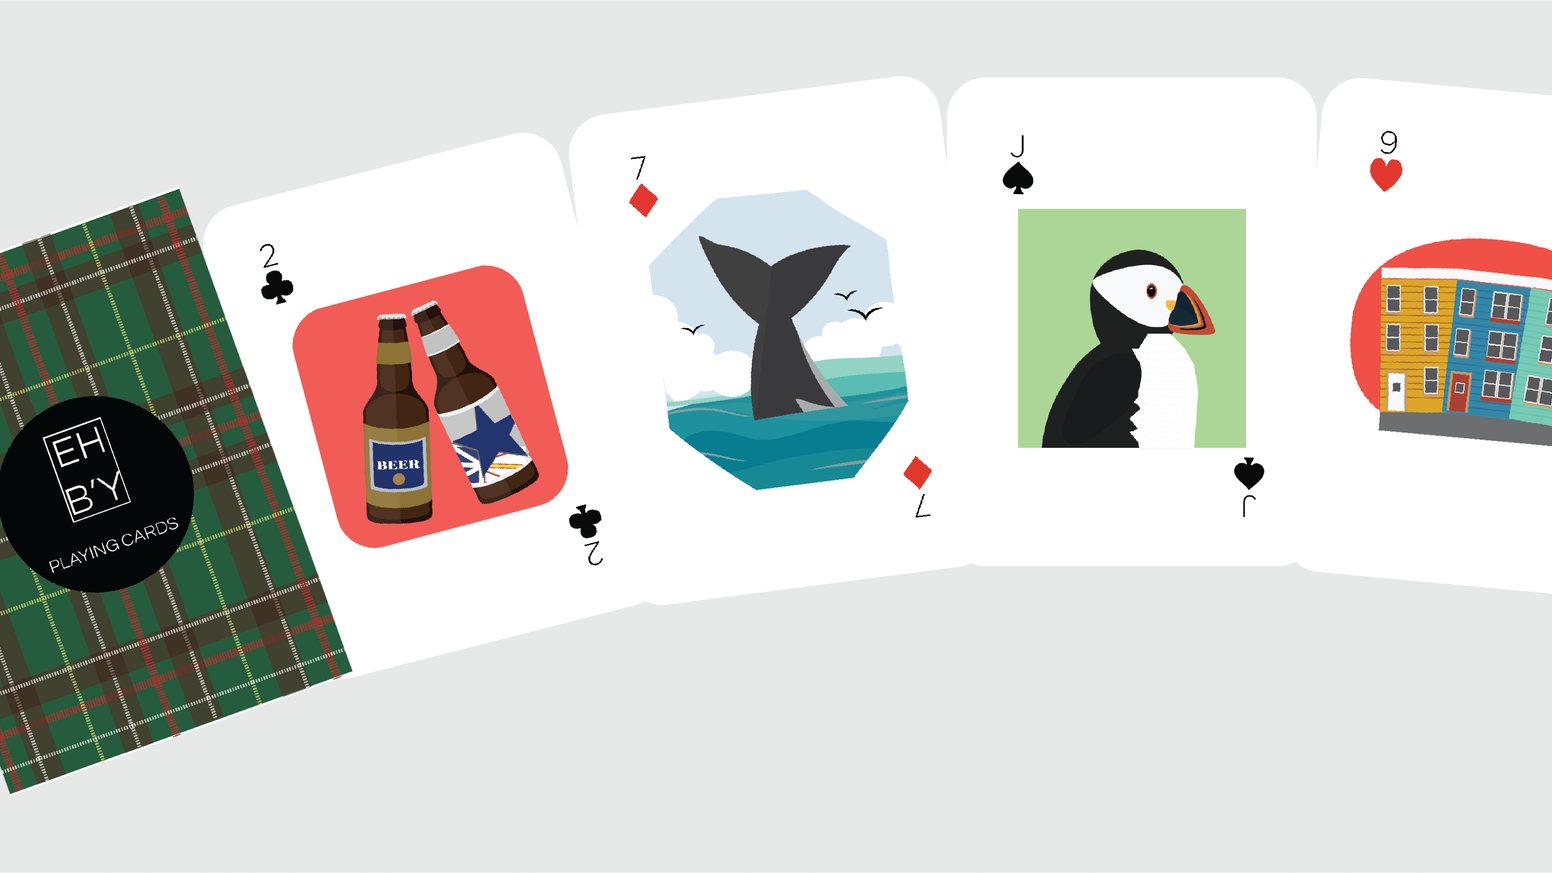 EH B'Y Playing Cards: designed to be as unique as the province they come from.